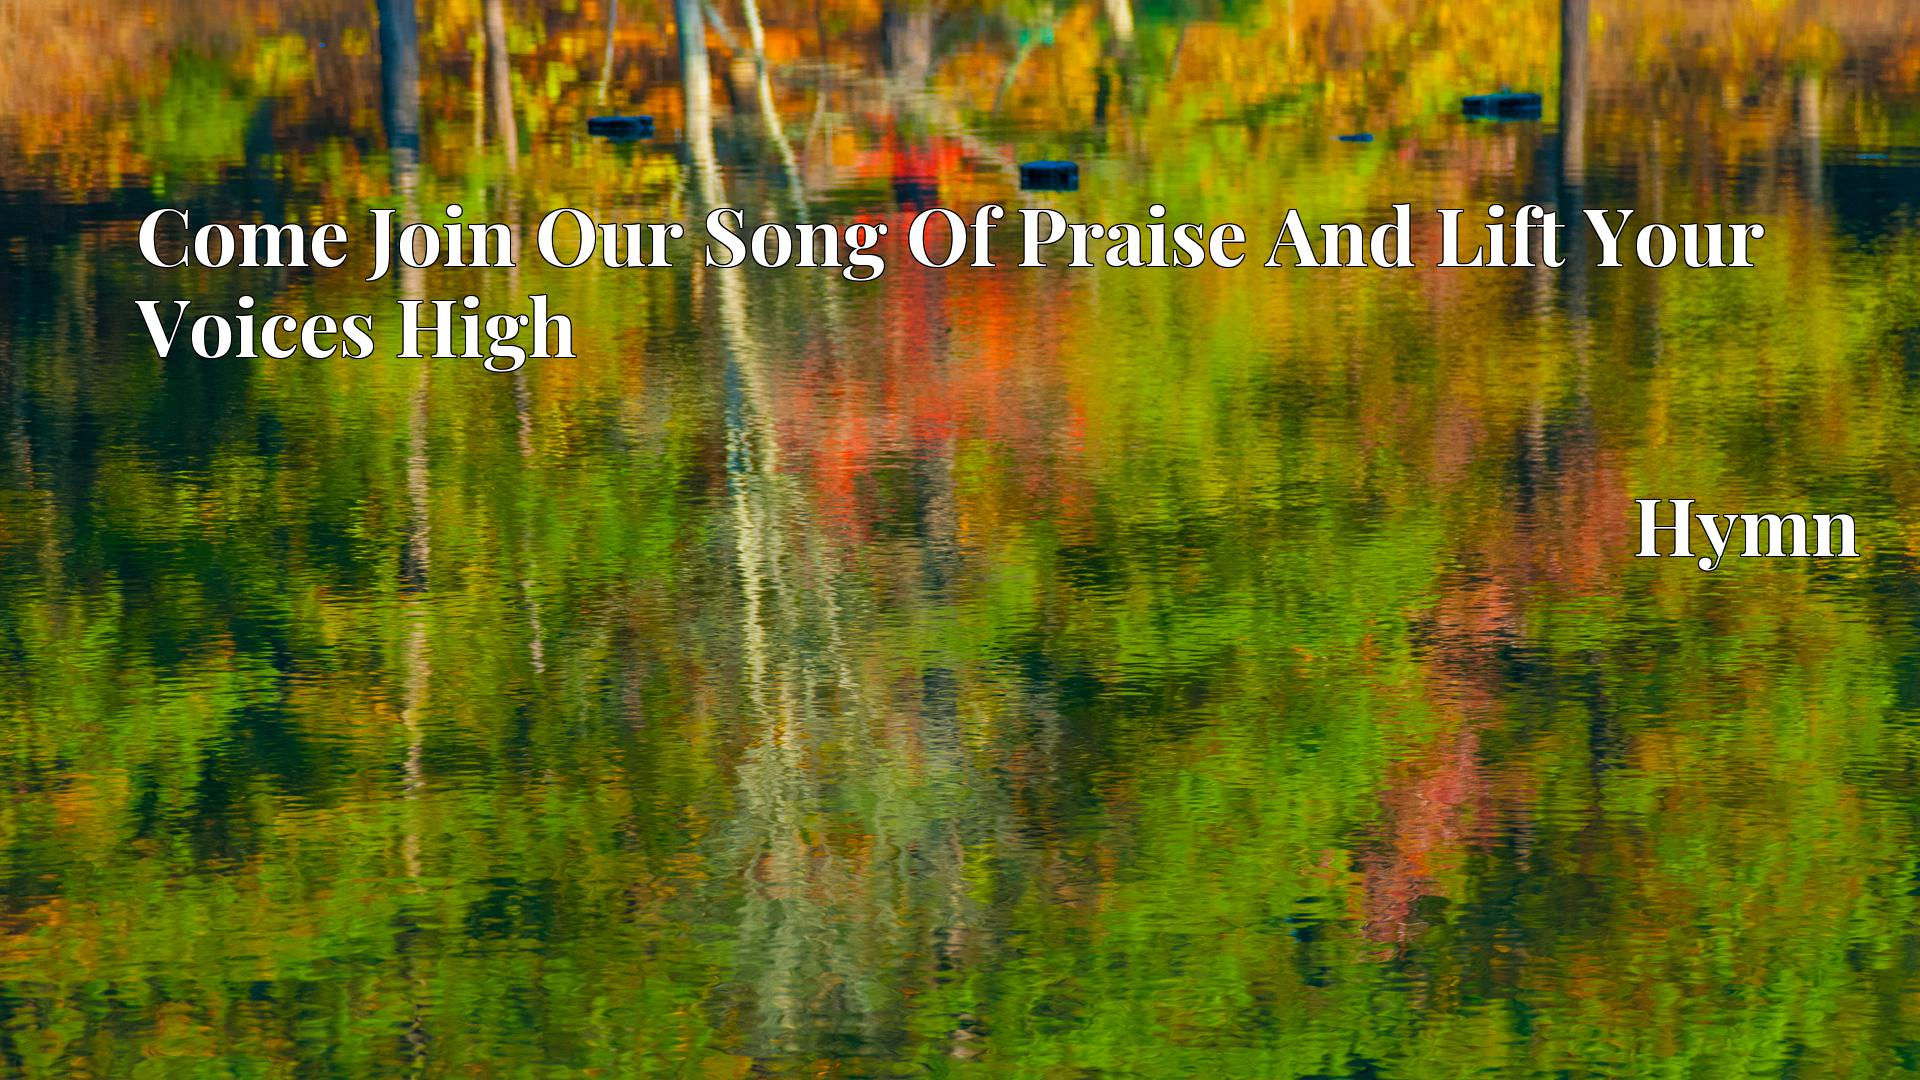 Come Join Our Song Of Praise And Lift Your Voices High - Hymn